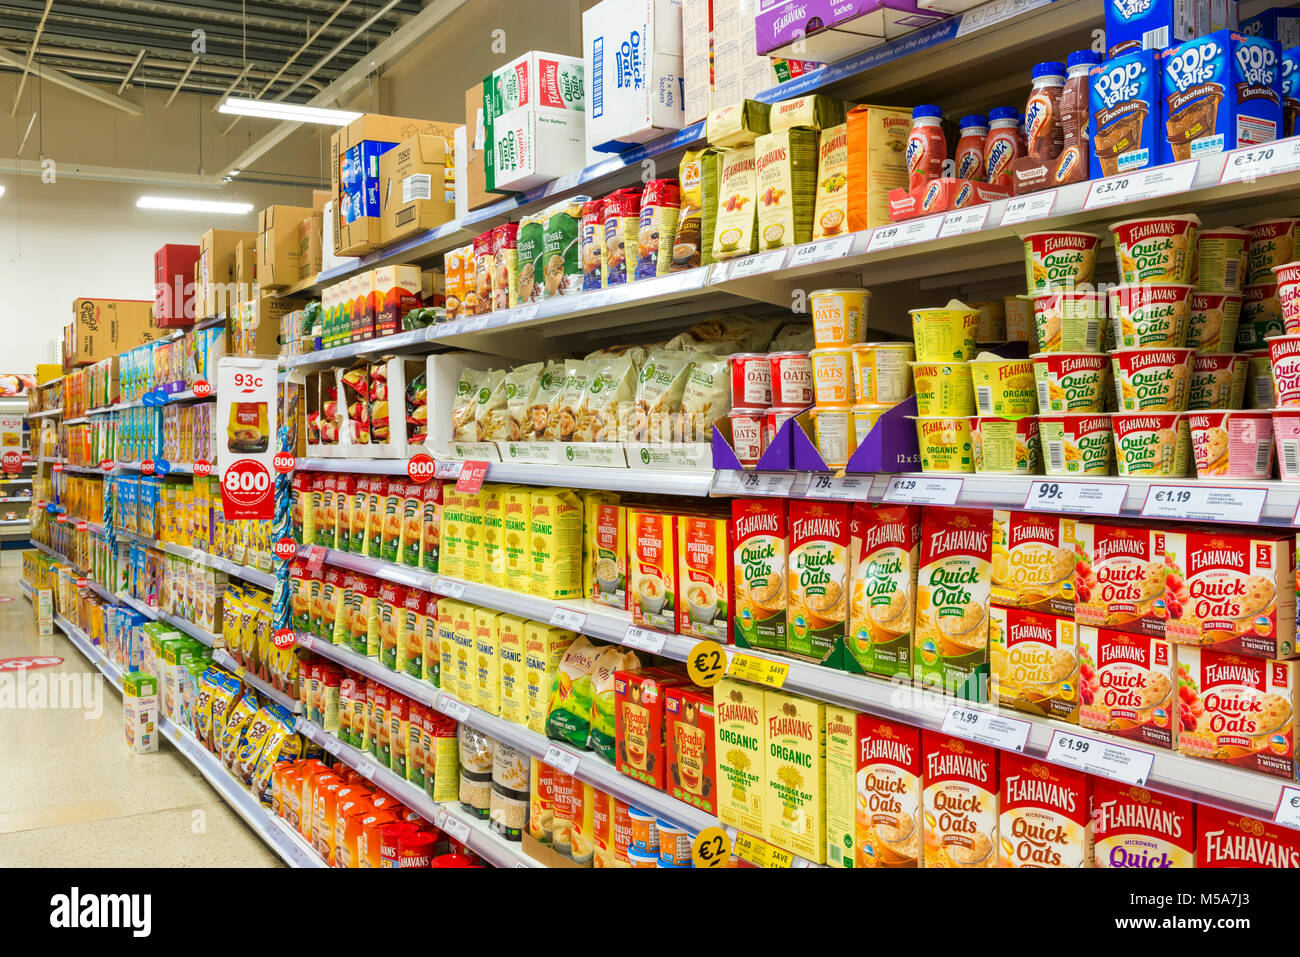 Breakfast cereals and snacks on display in a supermarket - Stock Image